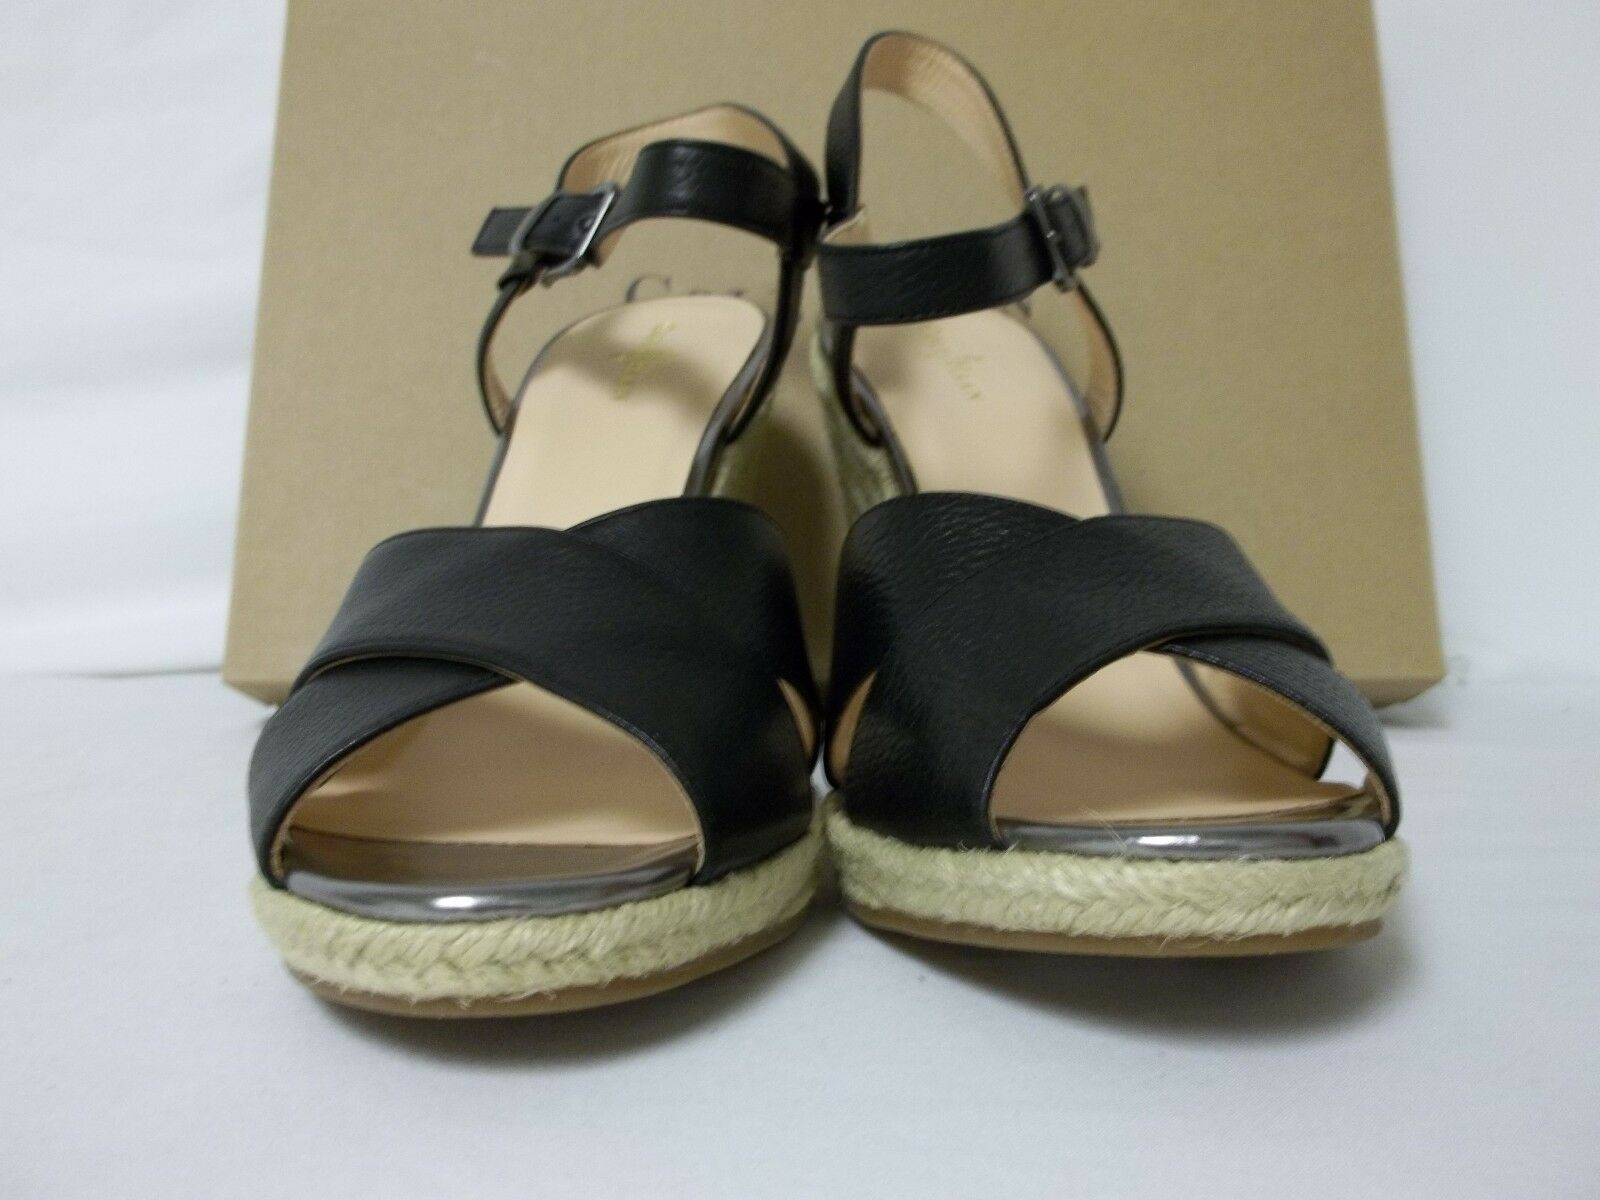 Cole Haan Size Size Size 9 M Hart Black Open Toe Wedges Leather New Womens shoes dca680